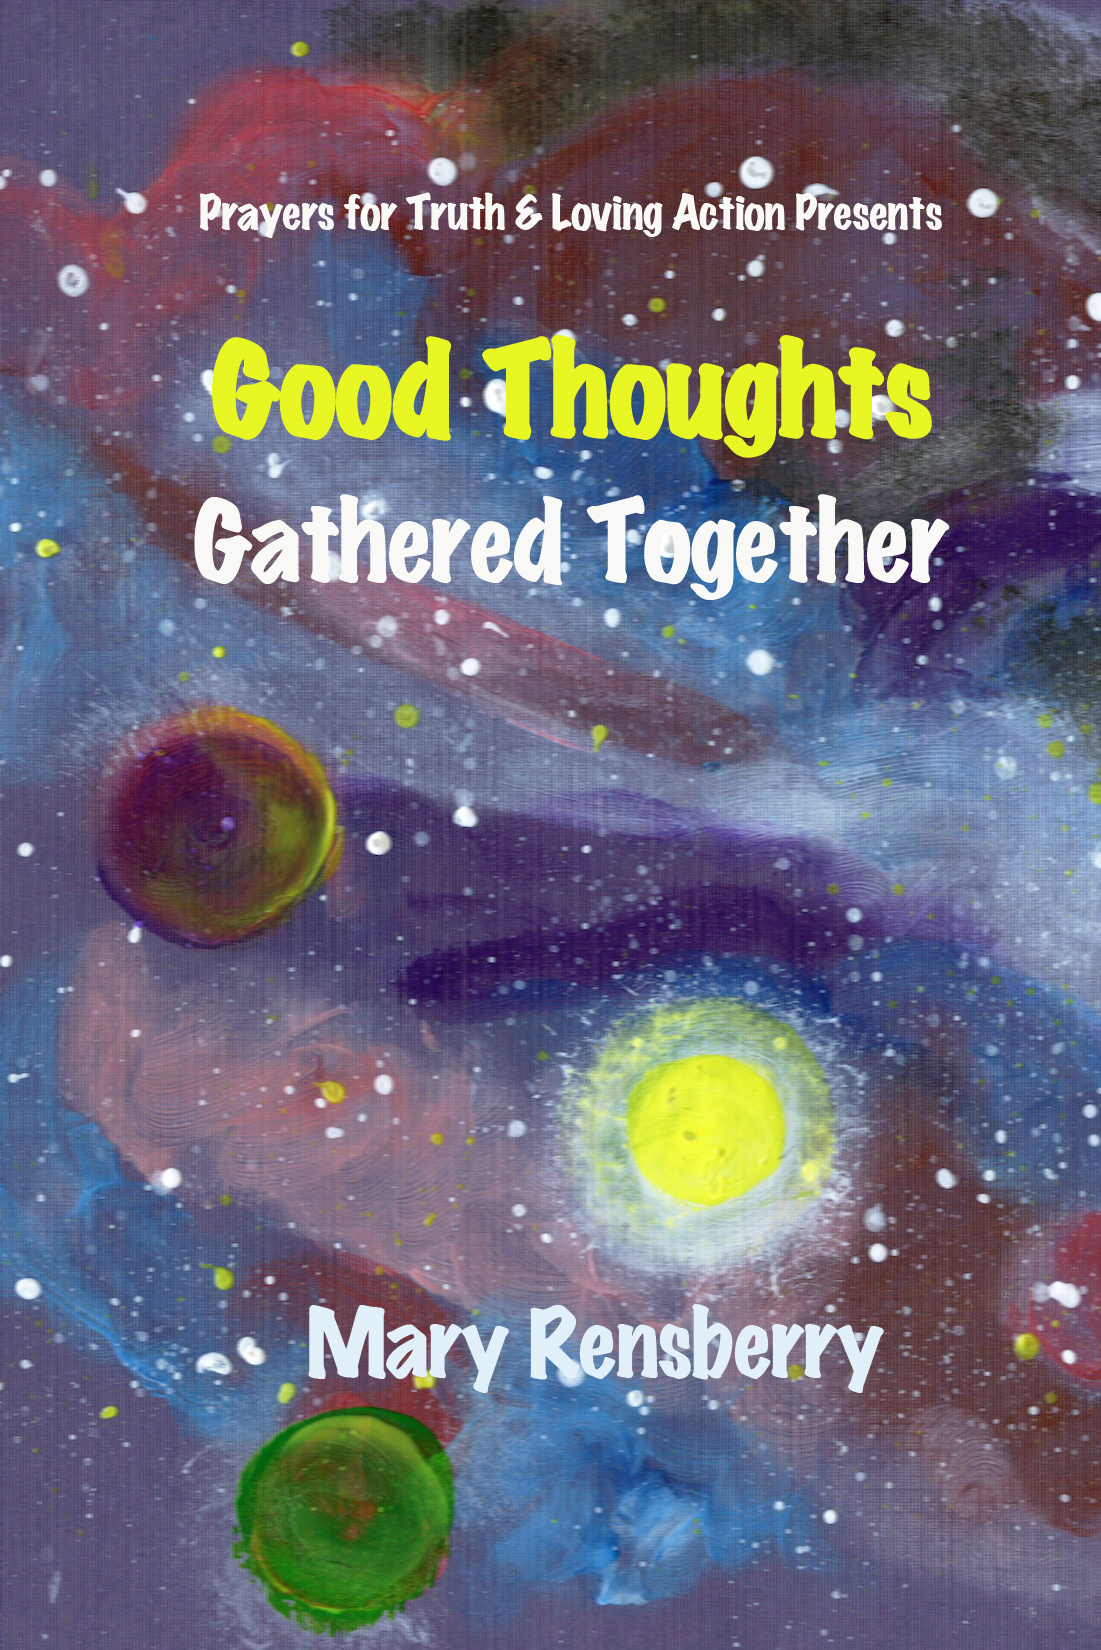 Books Make Booms custom books for causes book Good Thoughts Gathered Together by Michigan Author  and illustrator Mary Rensberry.